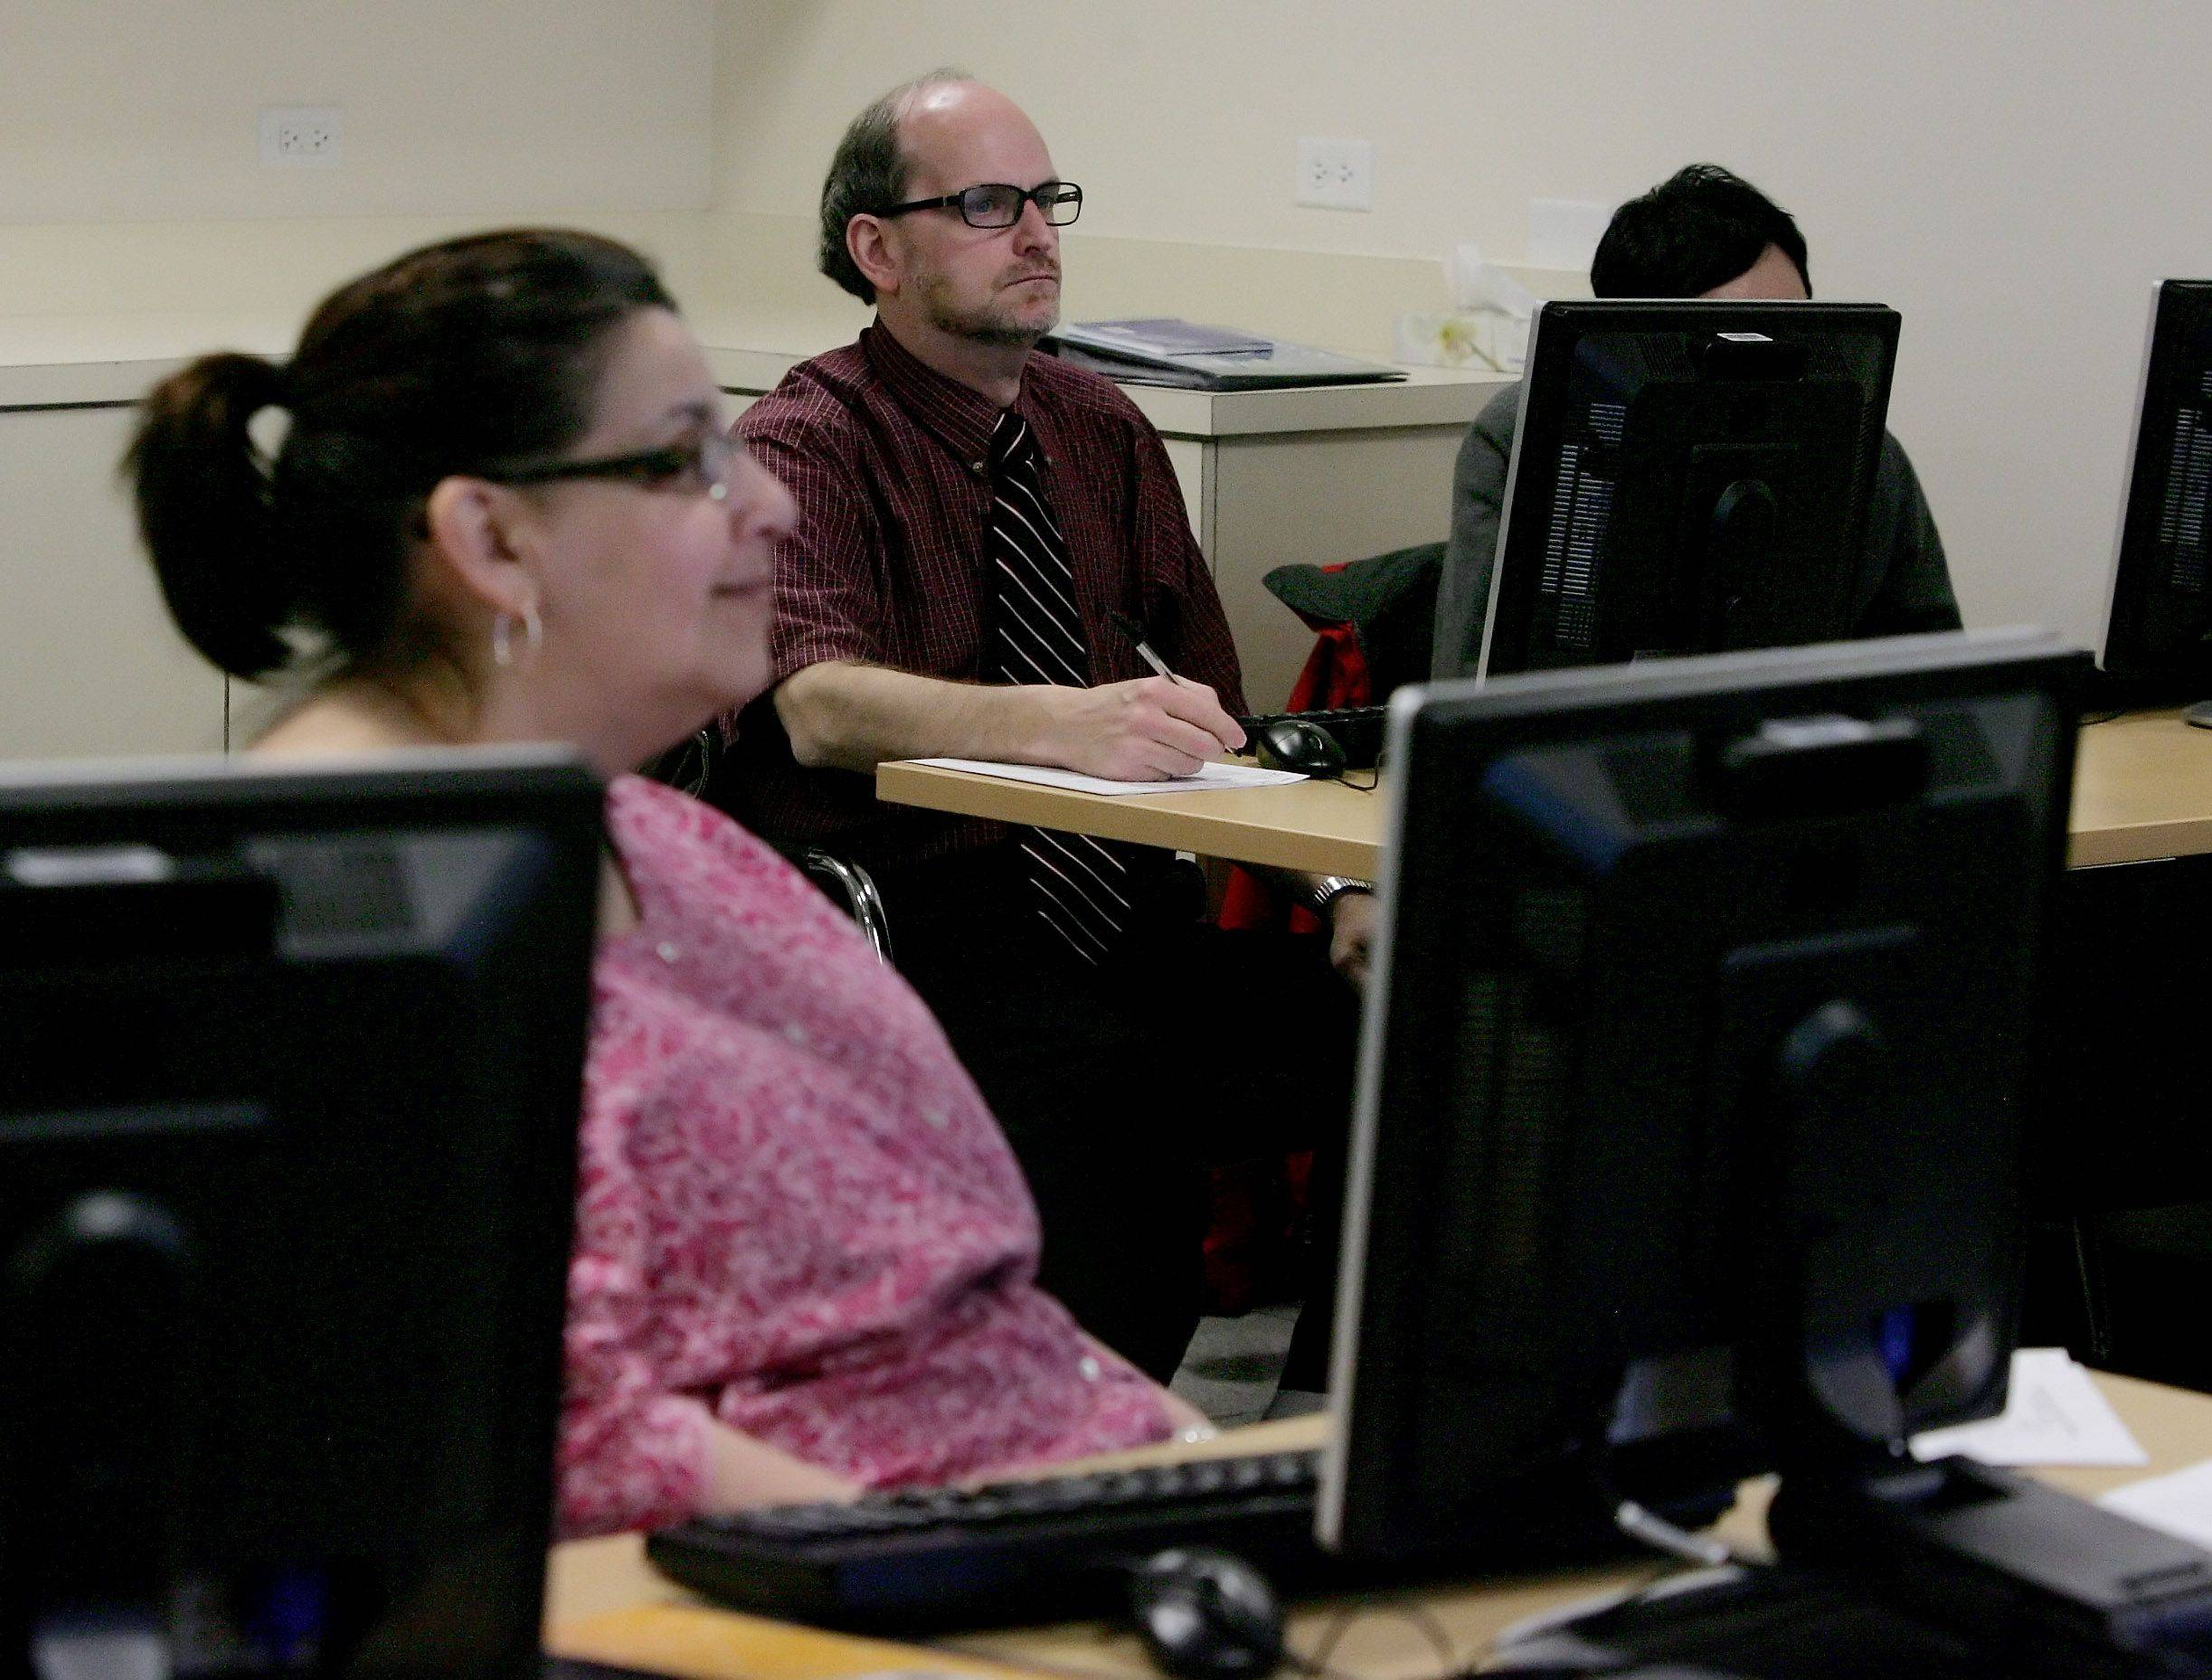 Vernon Hills resident Ellen Peckler, foreground, and Libertyville's Michael Page listen to the instructor during a jobs workshop Tuesday at the Cook Park Library in Libertyville. Libraries have become resources for unemployed people during the nation's economic struggles.